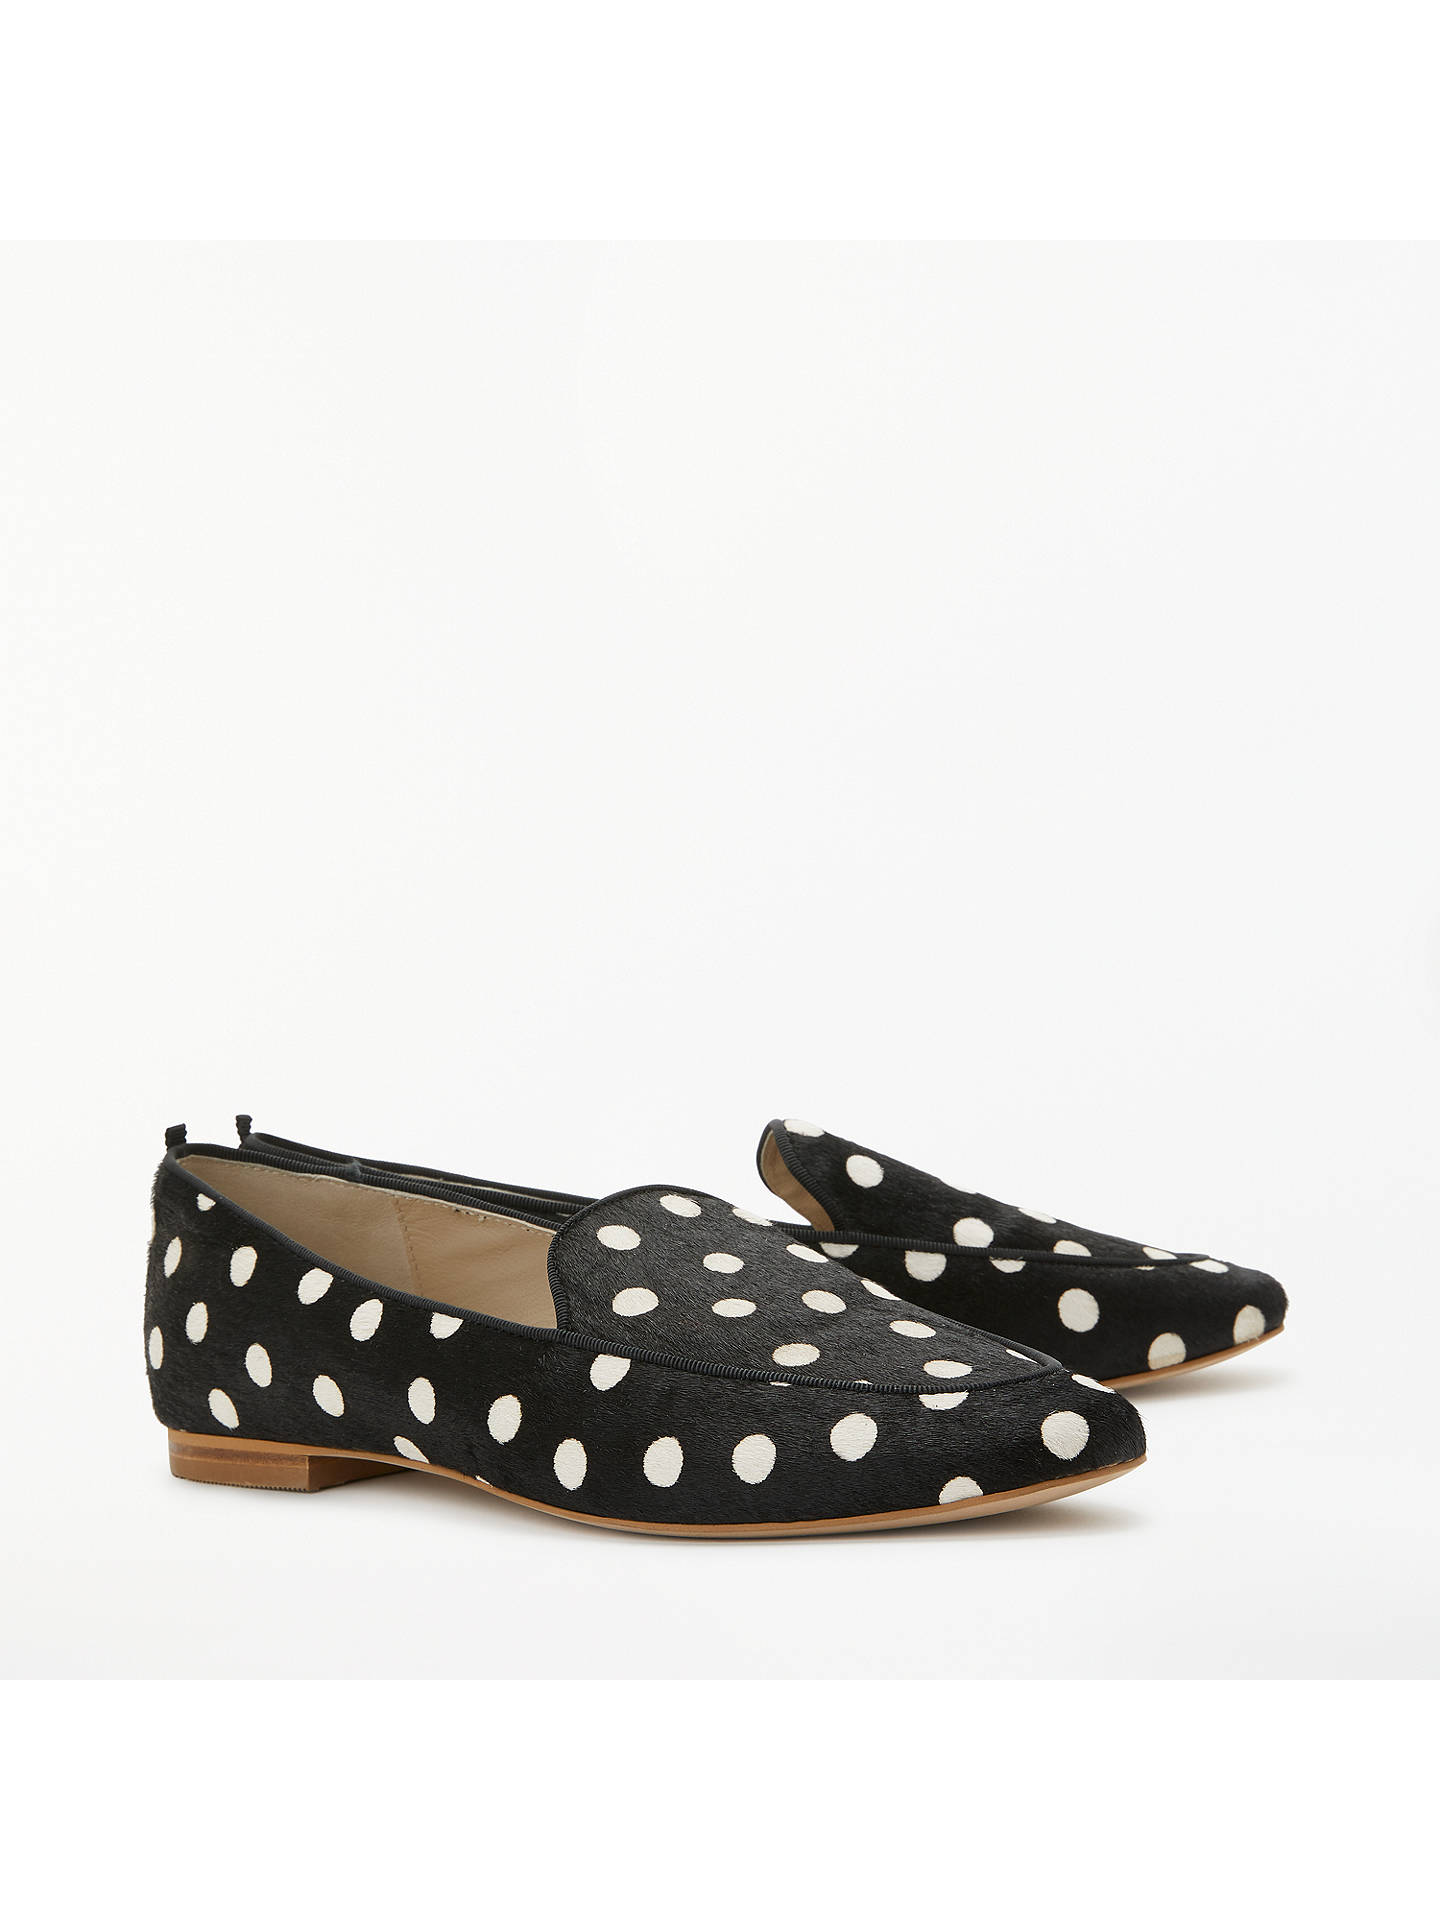 Buy Boden Imogen Hair-On-Hide Loafers, Black/White Spot, 4 Online at johnlewis.com